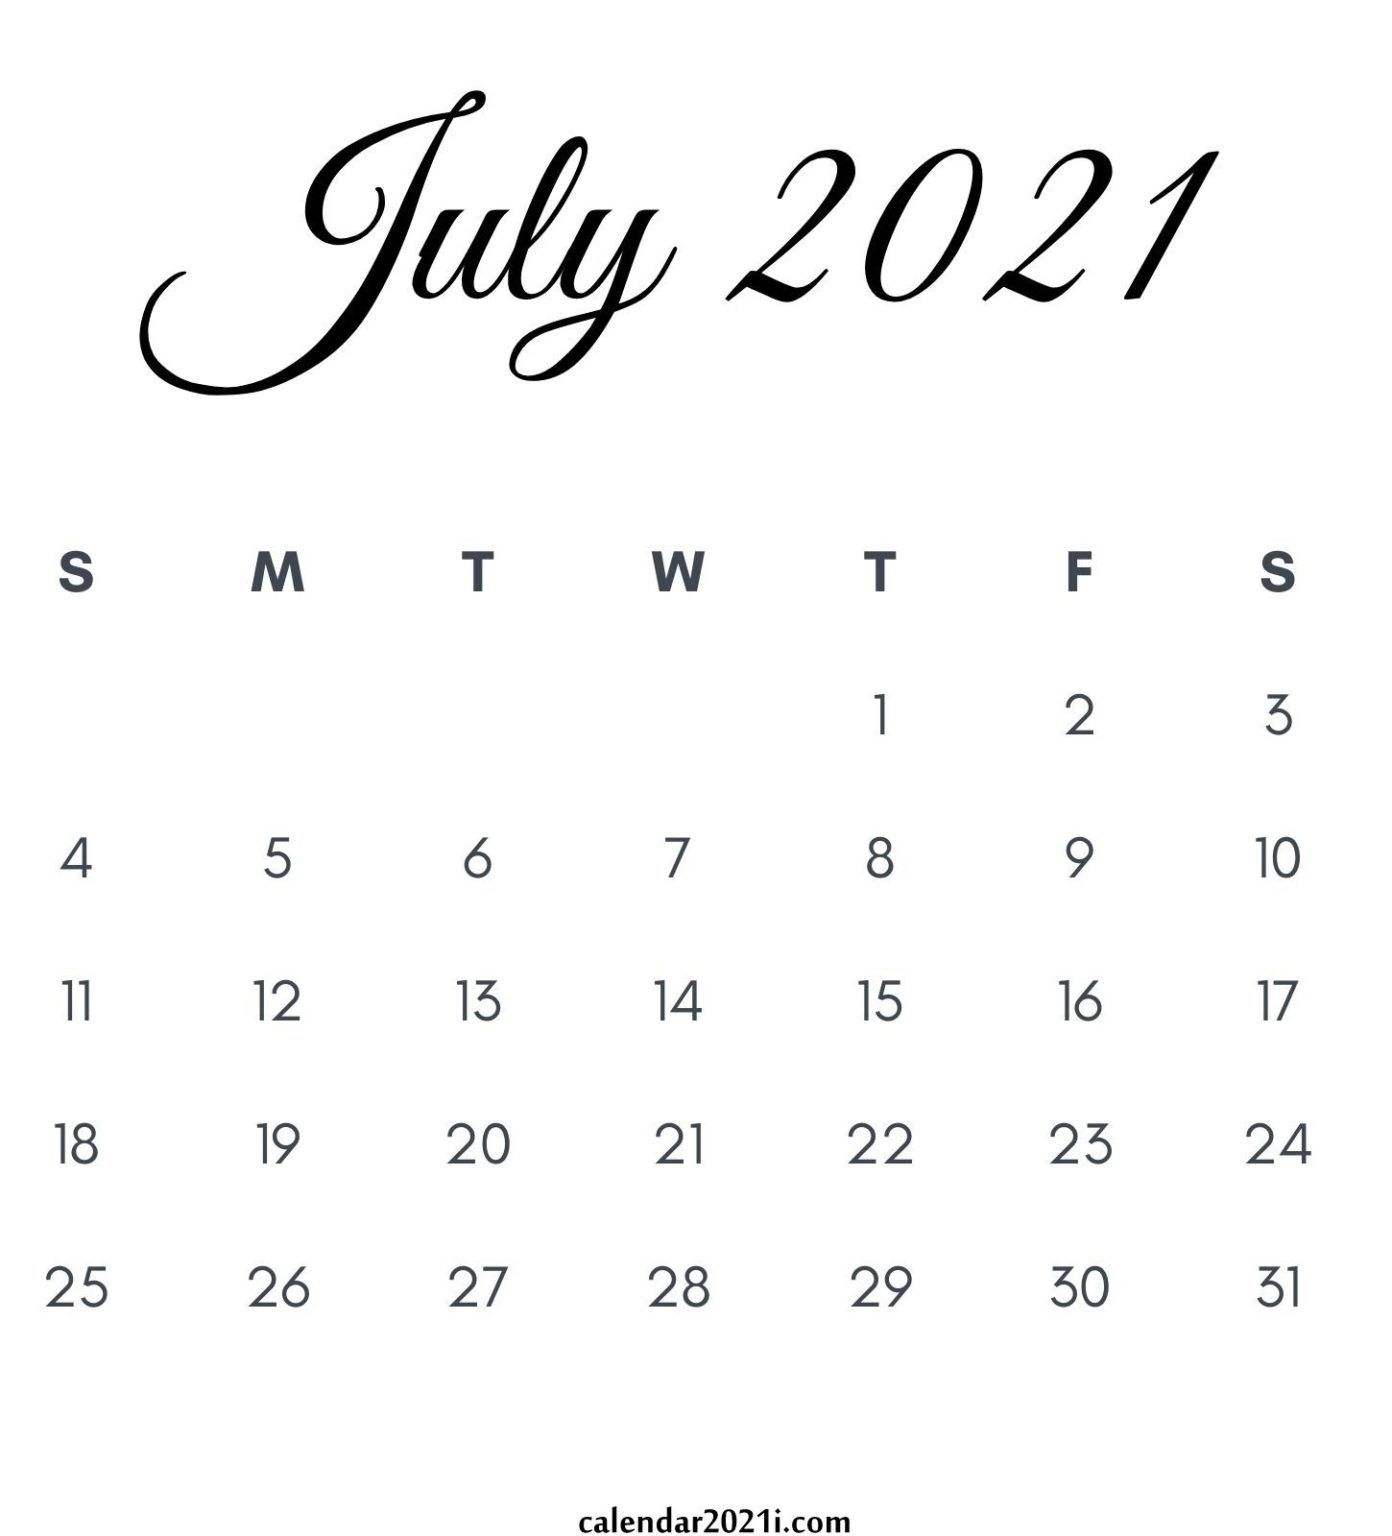 July 2021 Calendar Printable In 2020 | Monthly Calendar